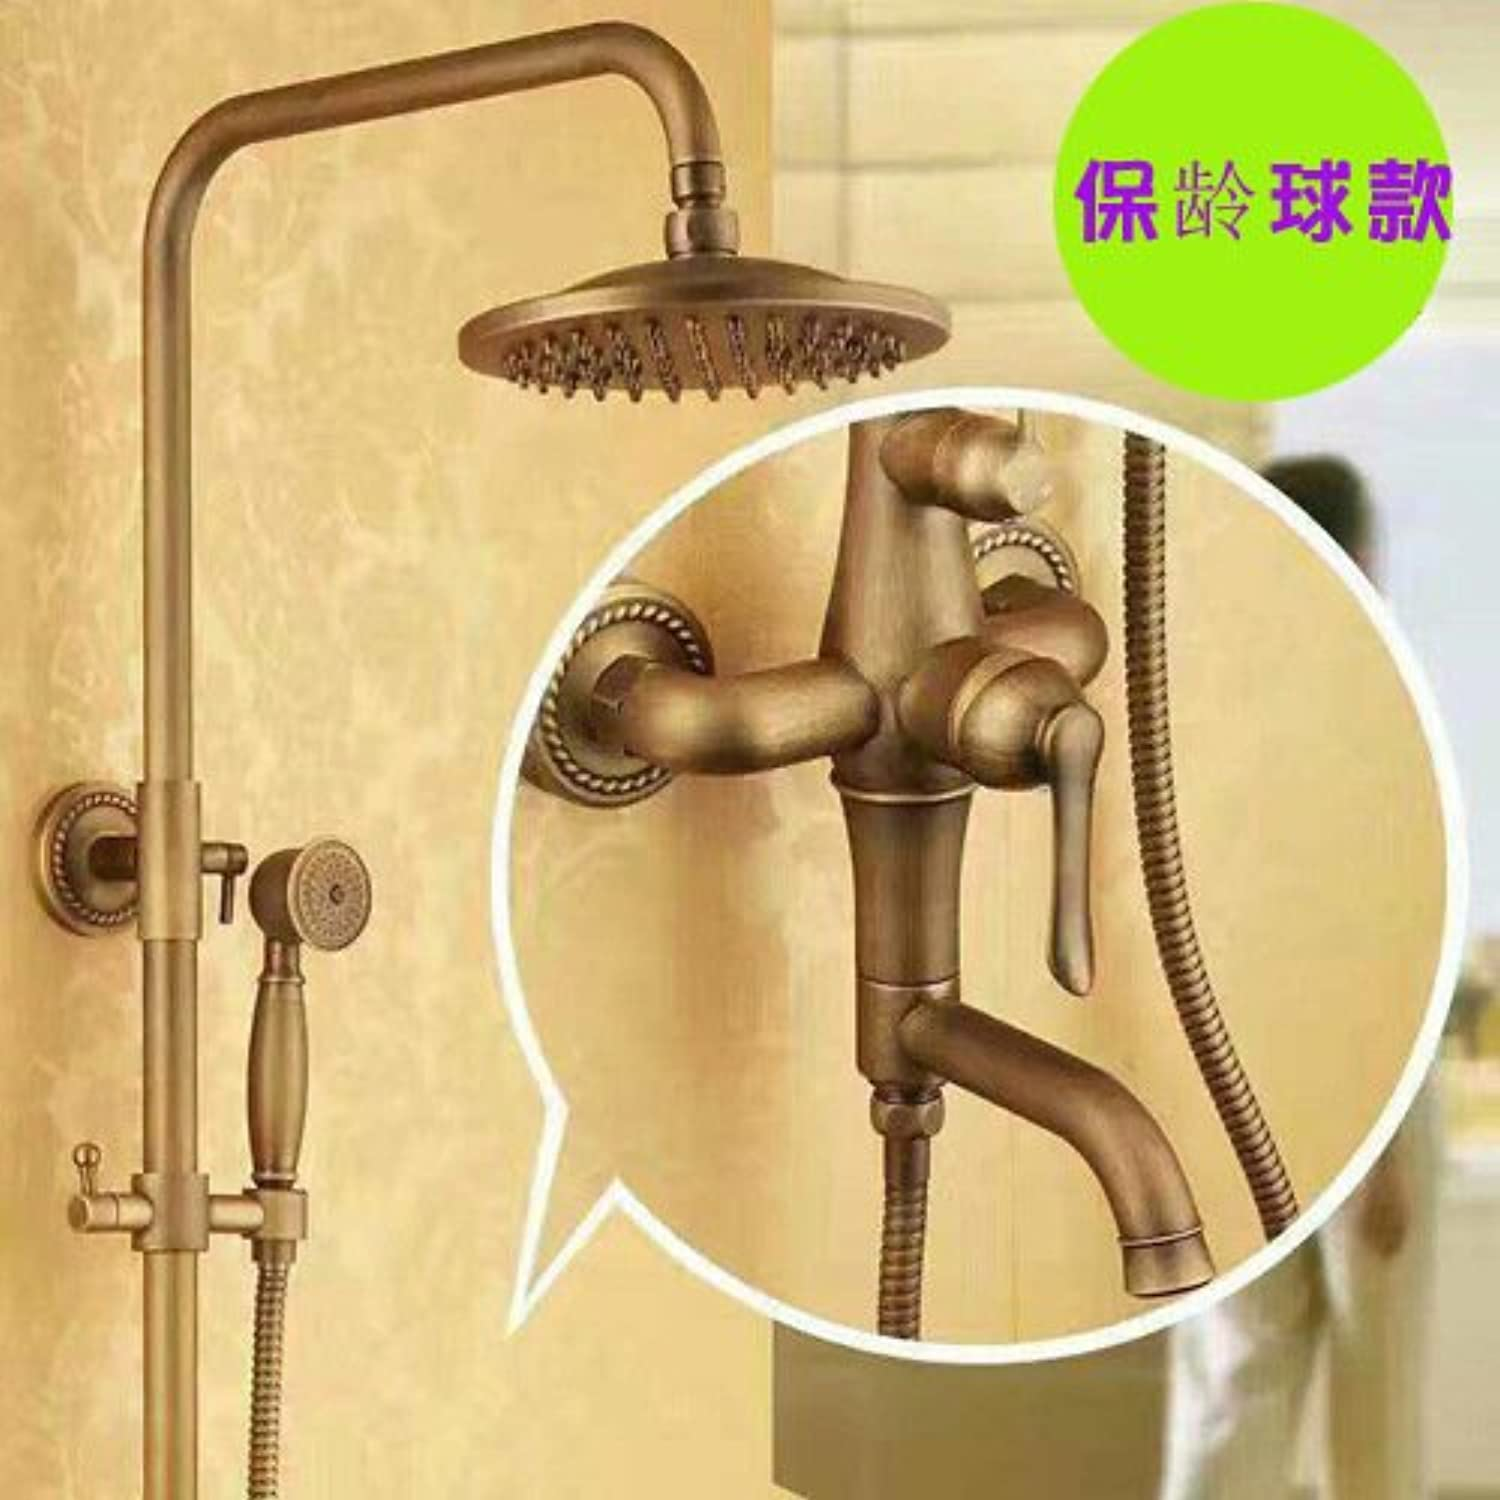 Hlluya Professional Sink Mixer Tap Kitchen Faucet Shower antique faucets shower kit full copper cold water full copper faucet, bowling,